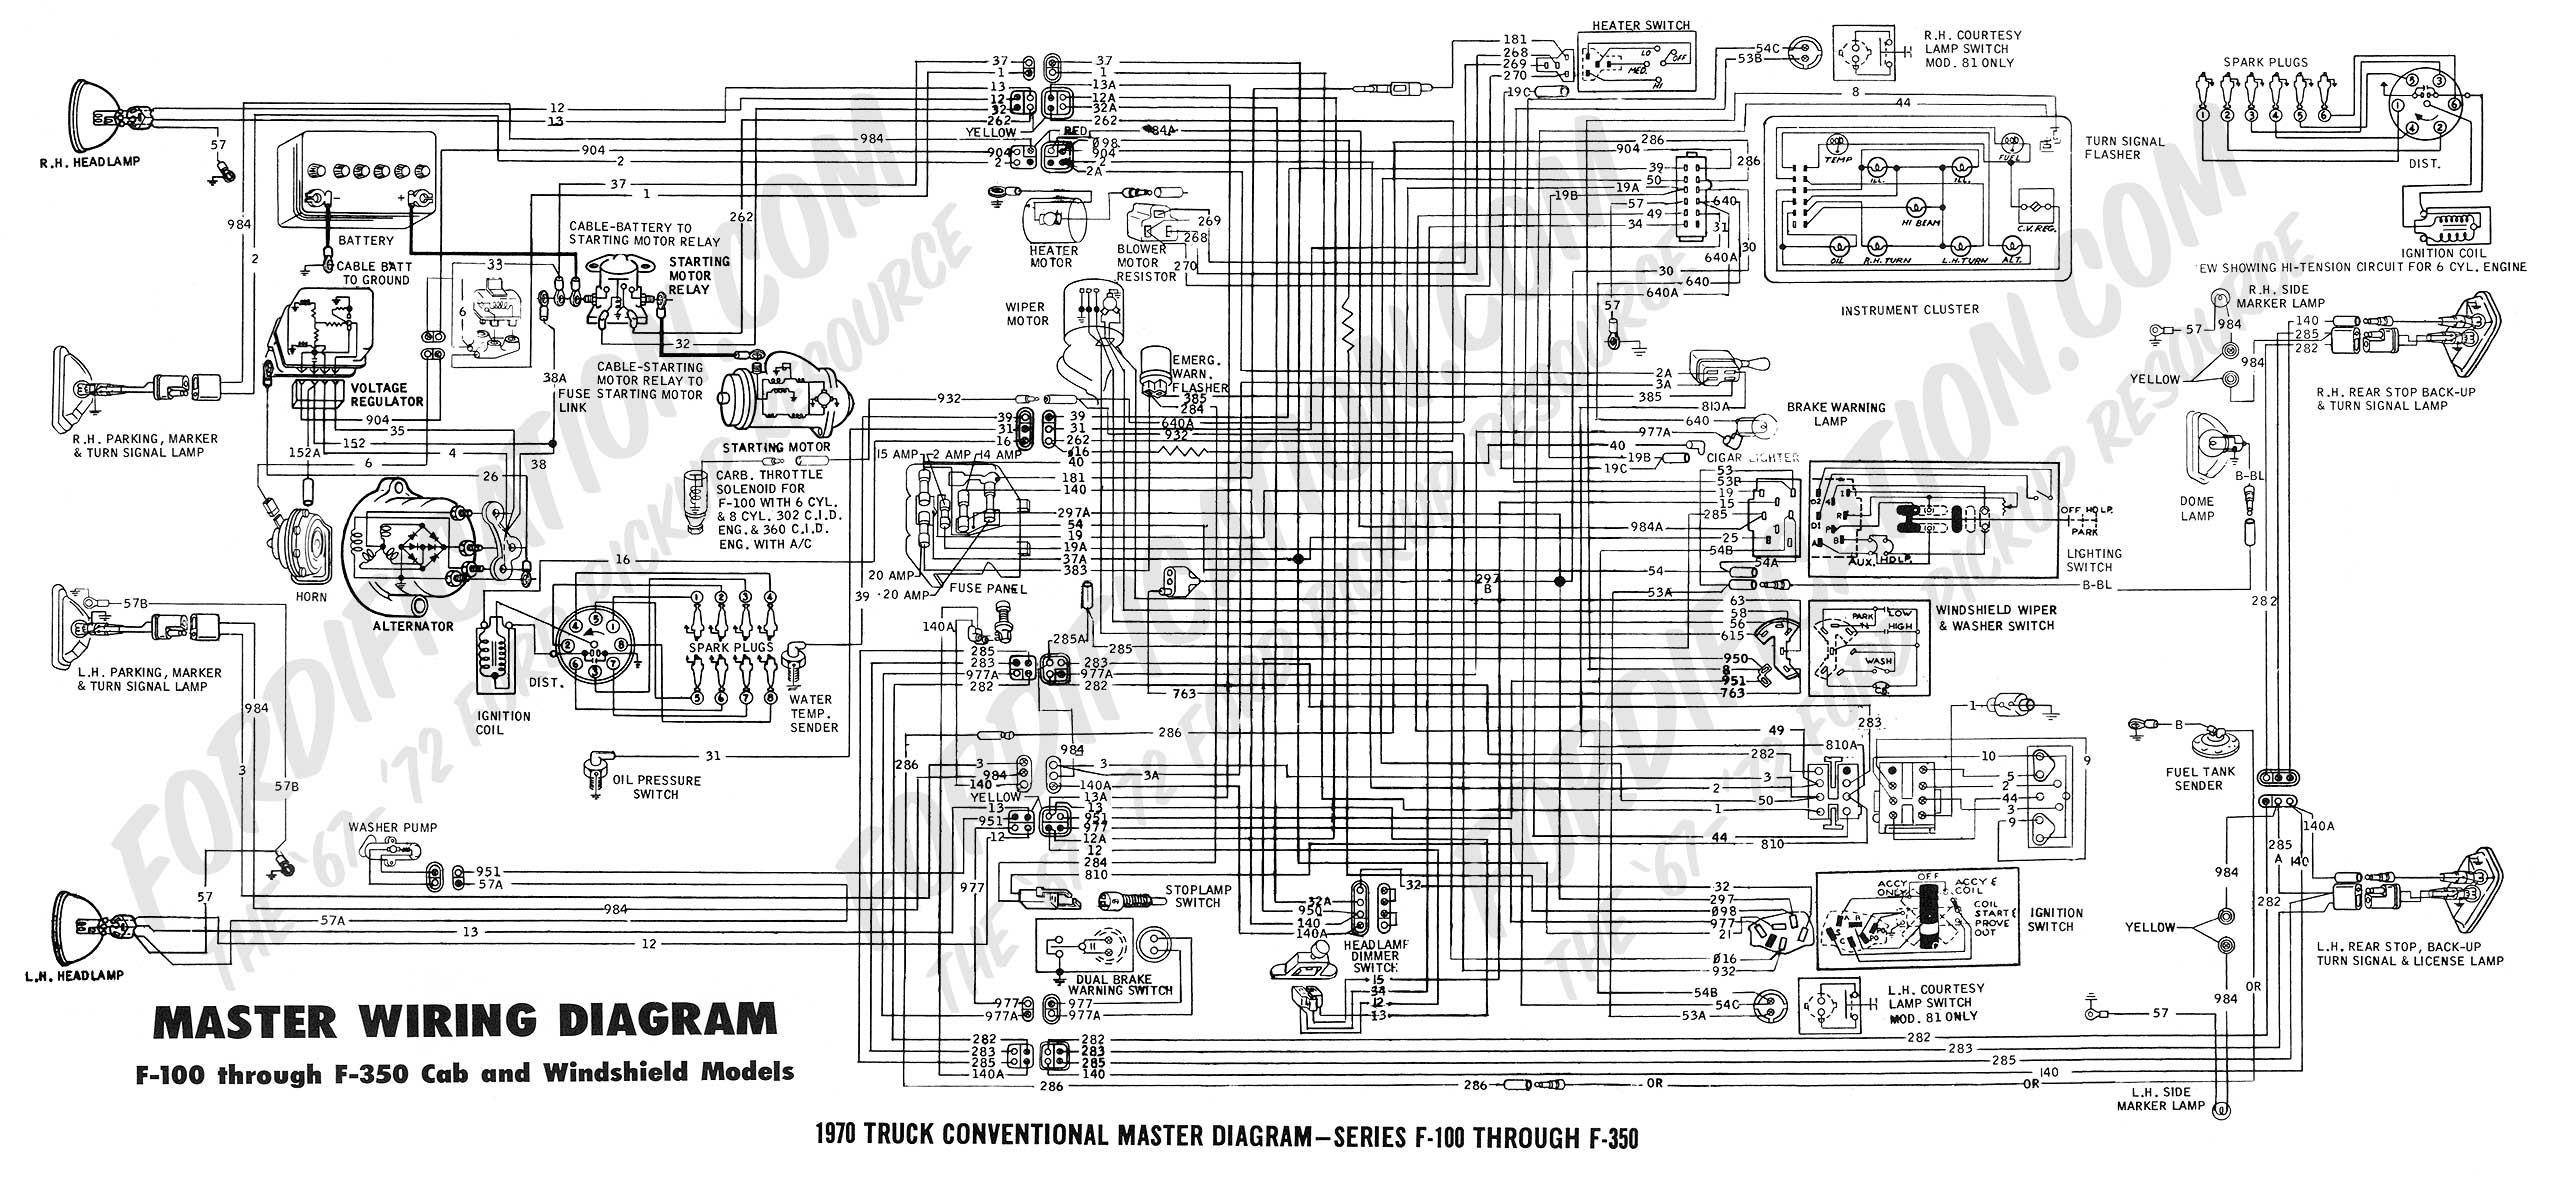 wiring diagram 70_master f450 wiring diagram pto wiring diagram f450 \u2022 wiring diagrams j 1999 Ford F250 Trailer Wiring Harness at couponss.co